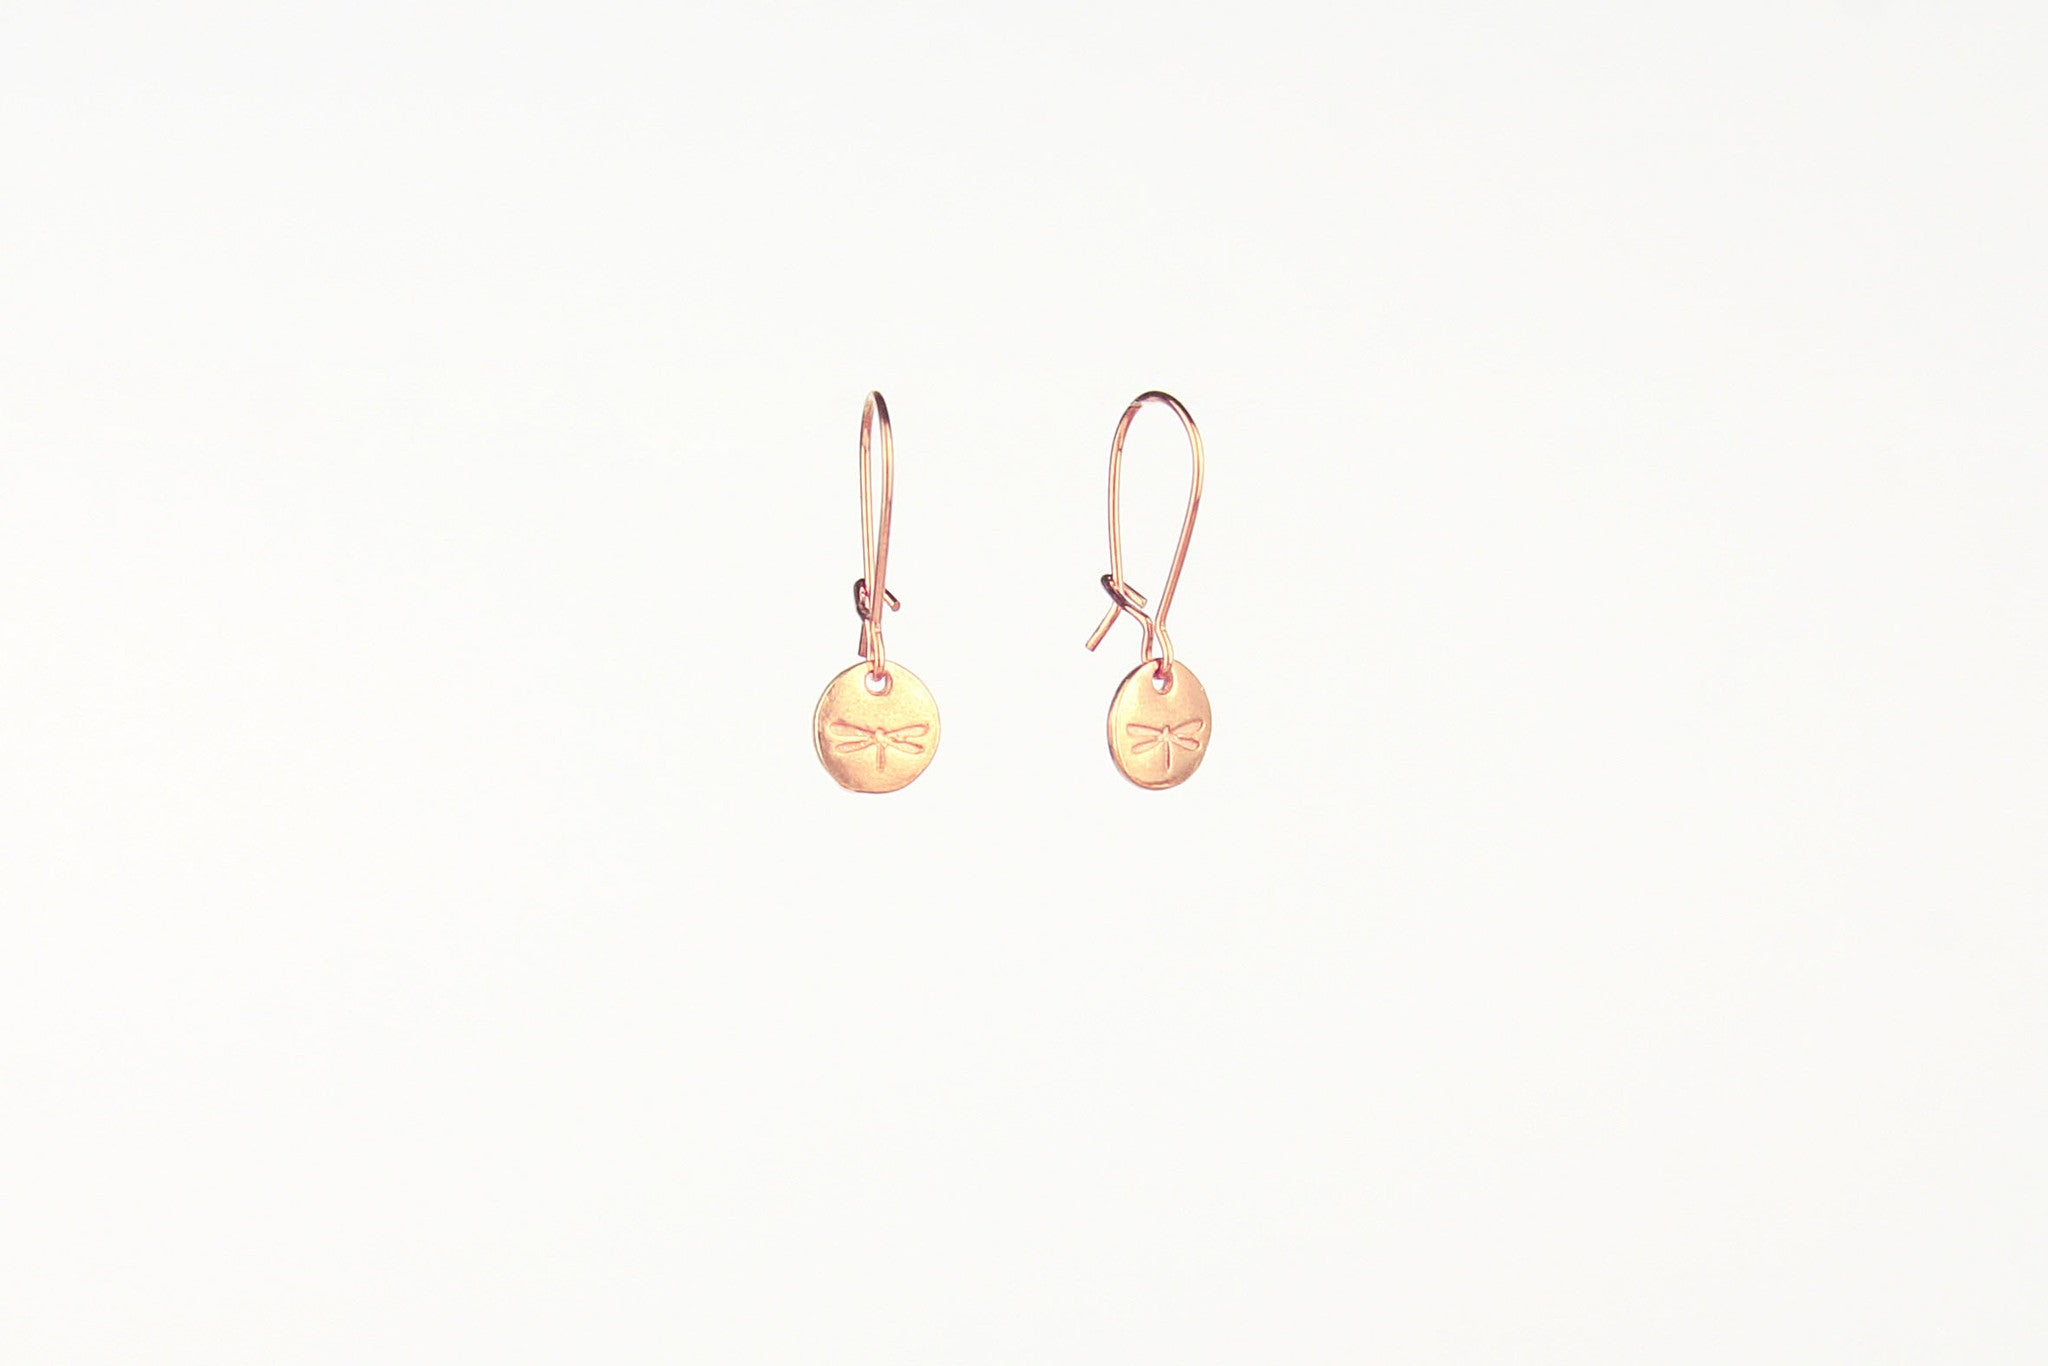 jewelberry ohrringe earrings dragonfly token rose gold plated sterling silver fine jewelry handmade with love fairtrade